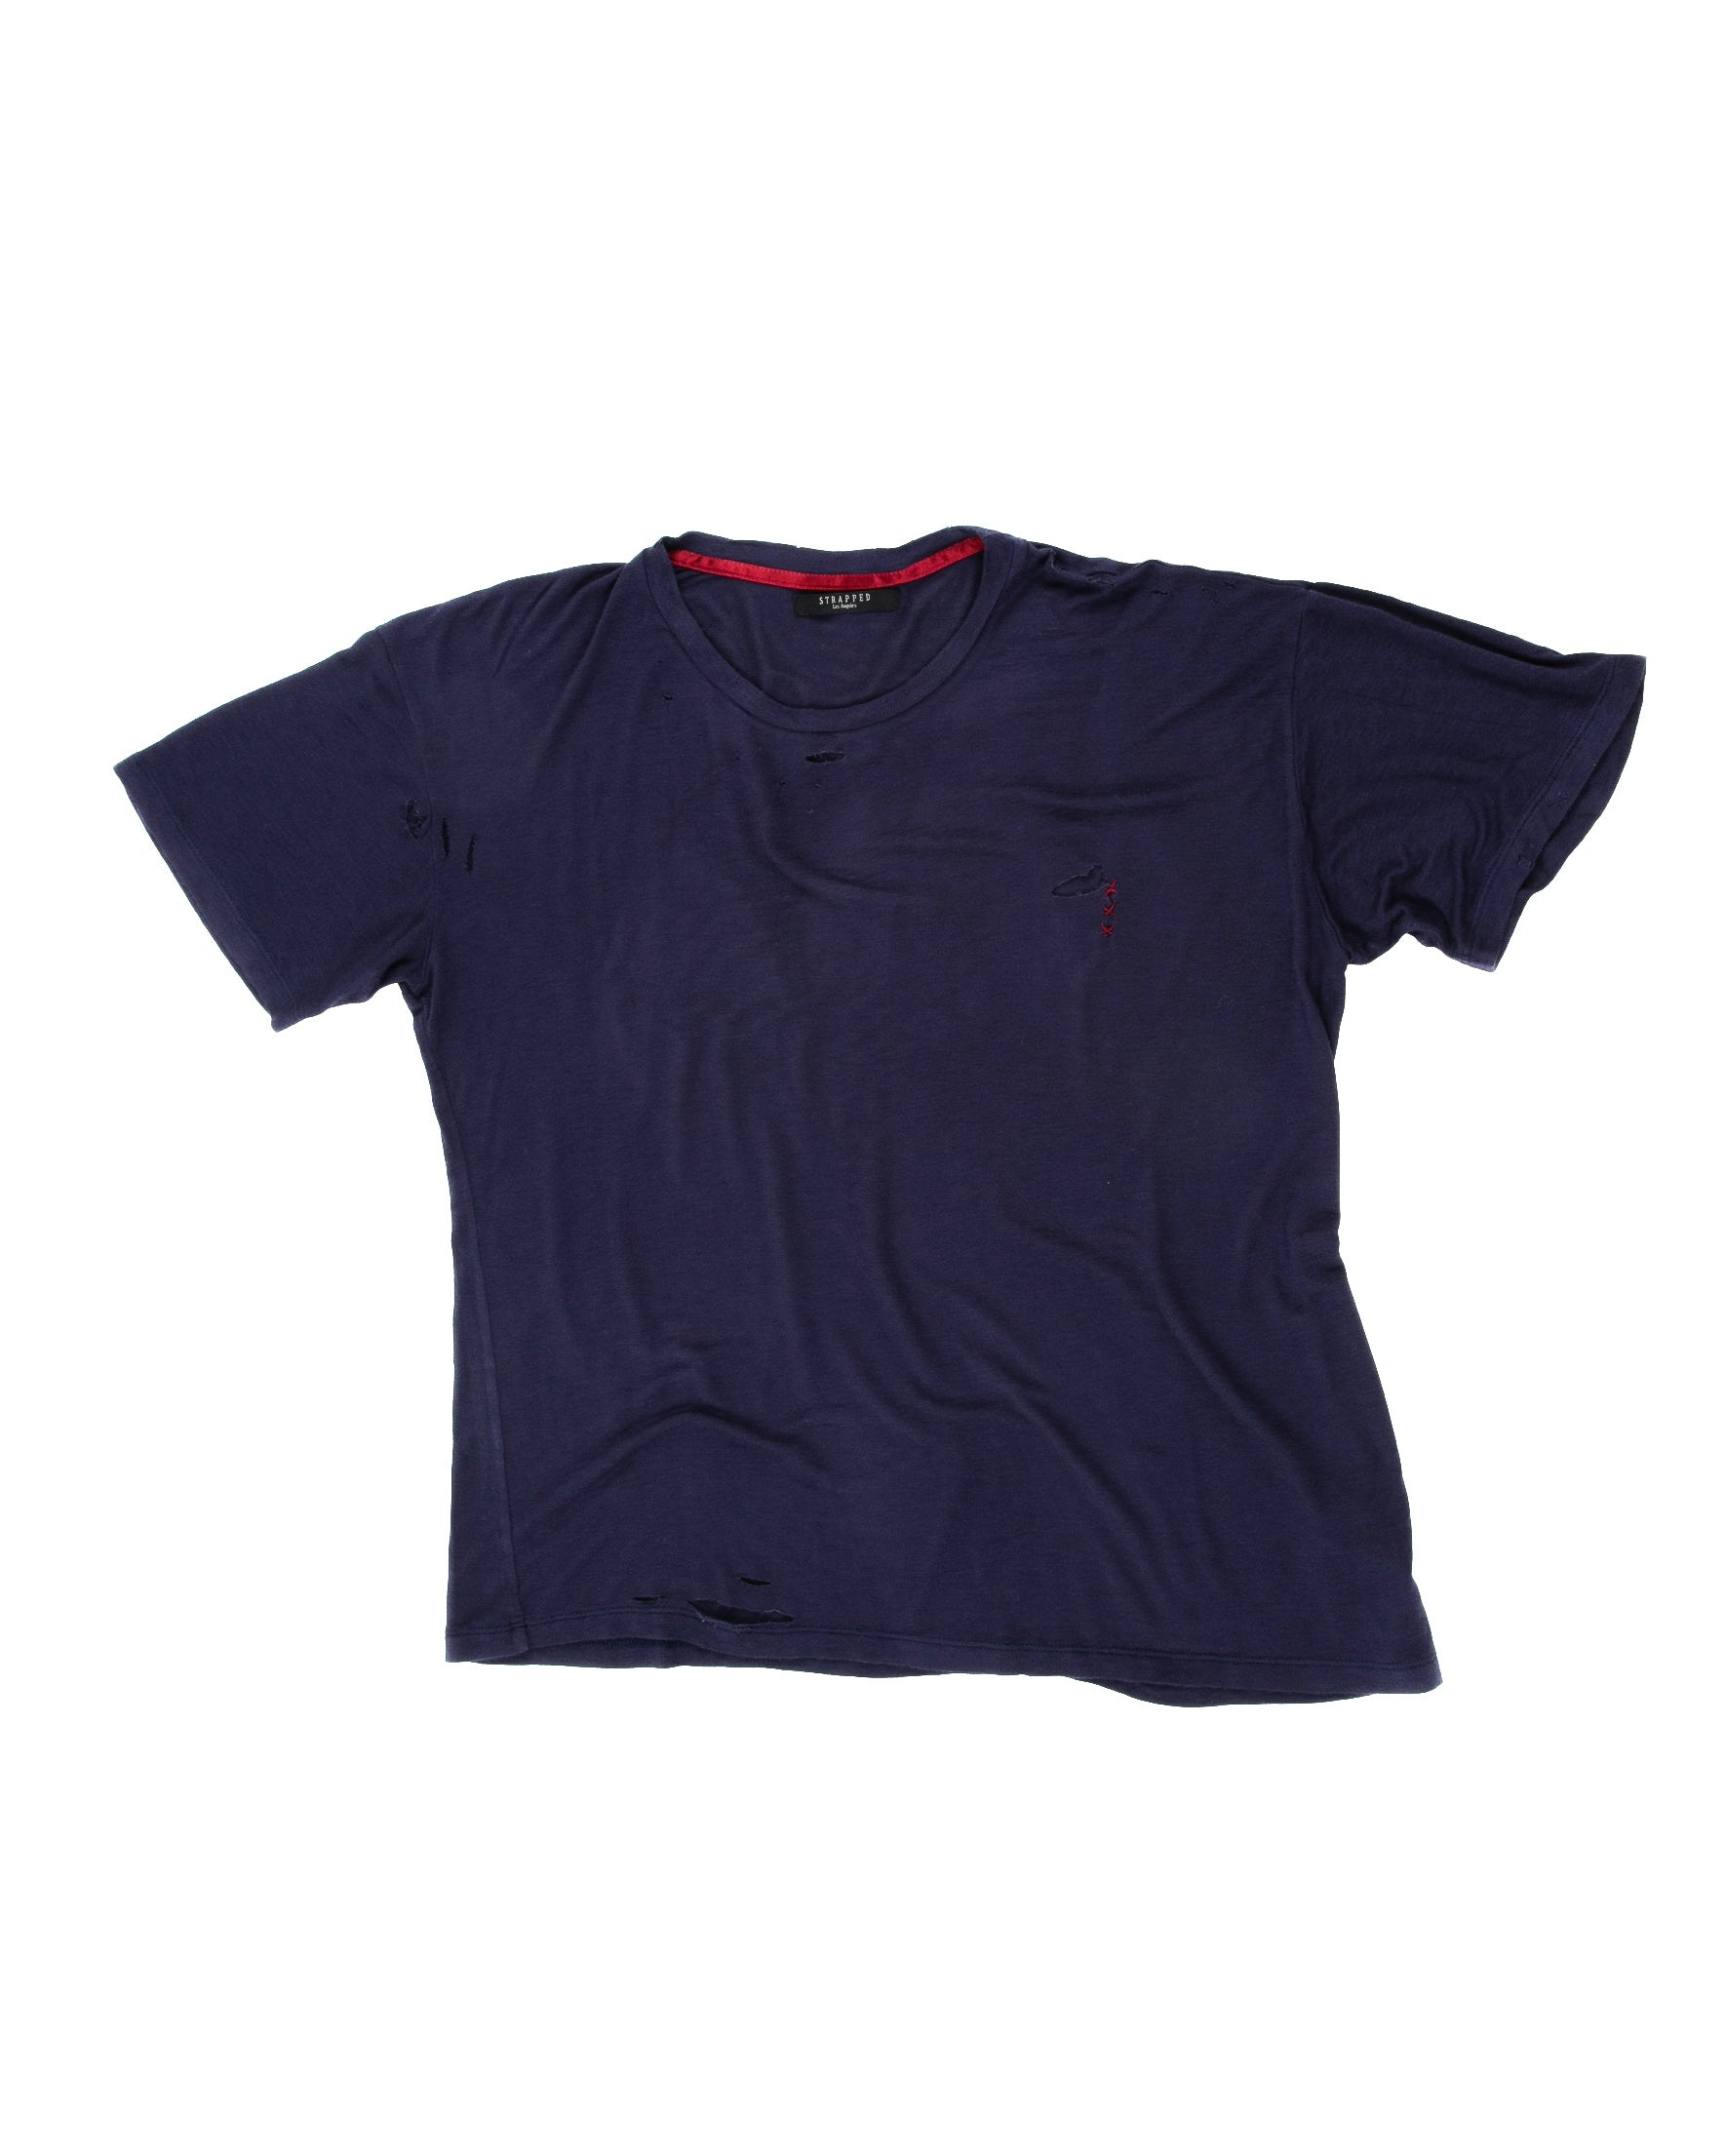 Front of Hand-stitched Tee in Navy